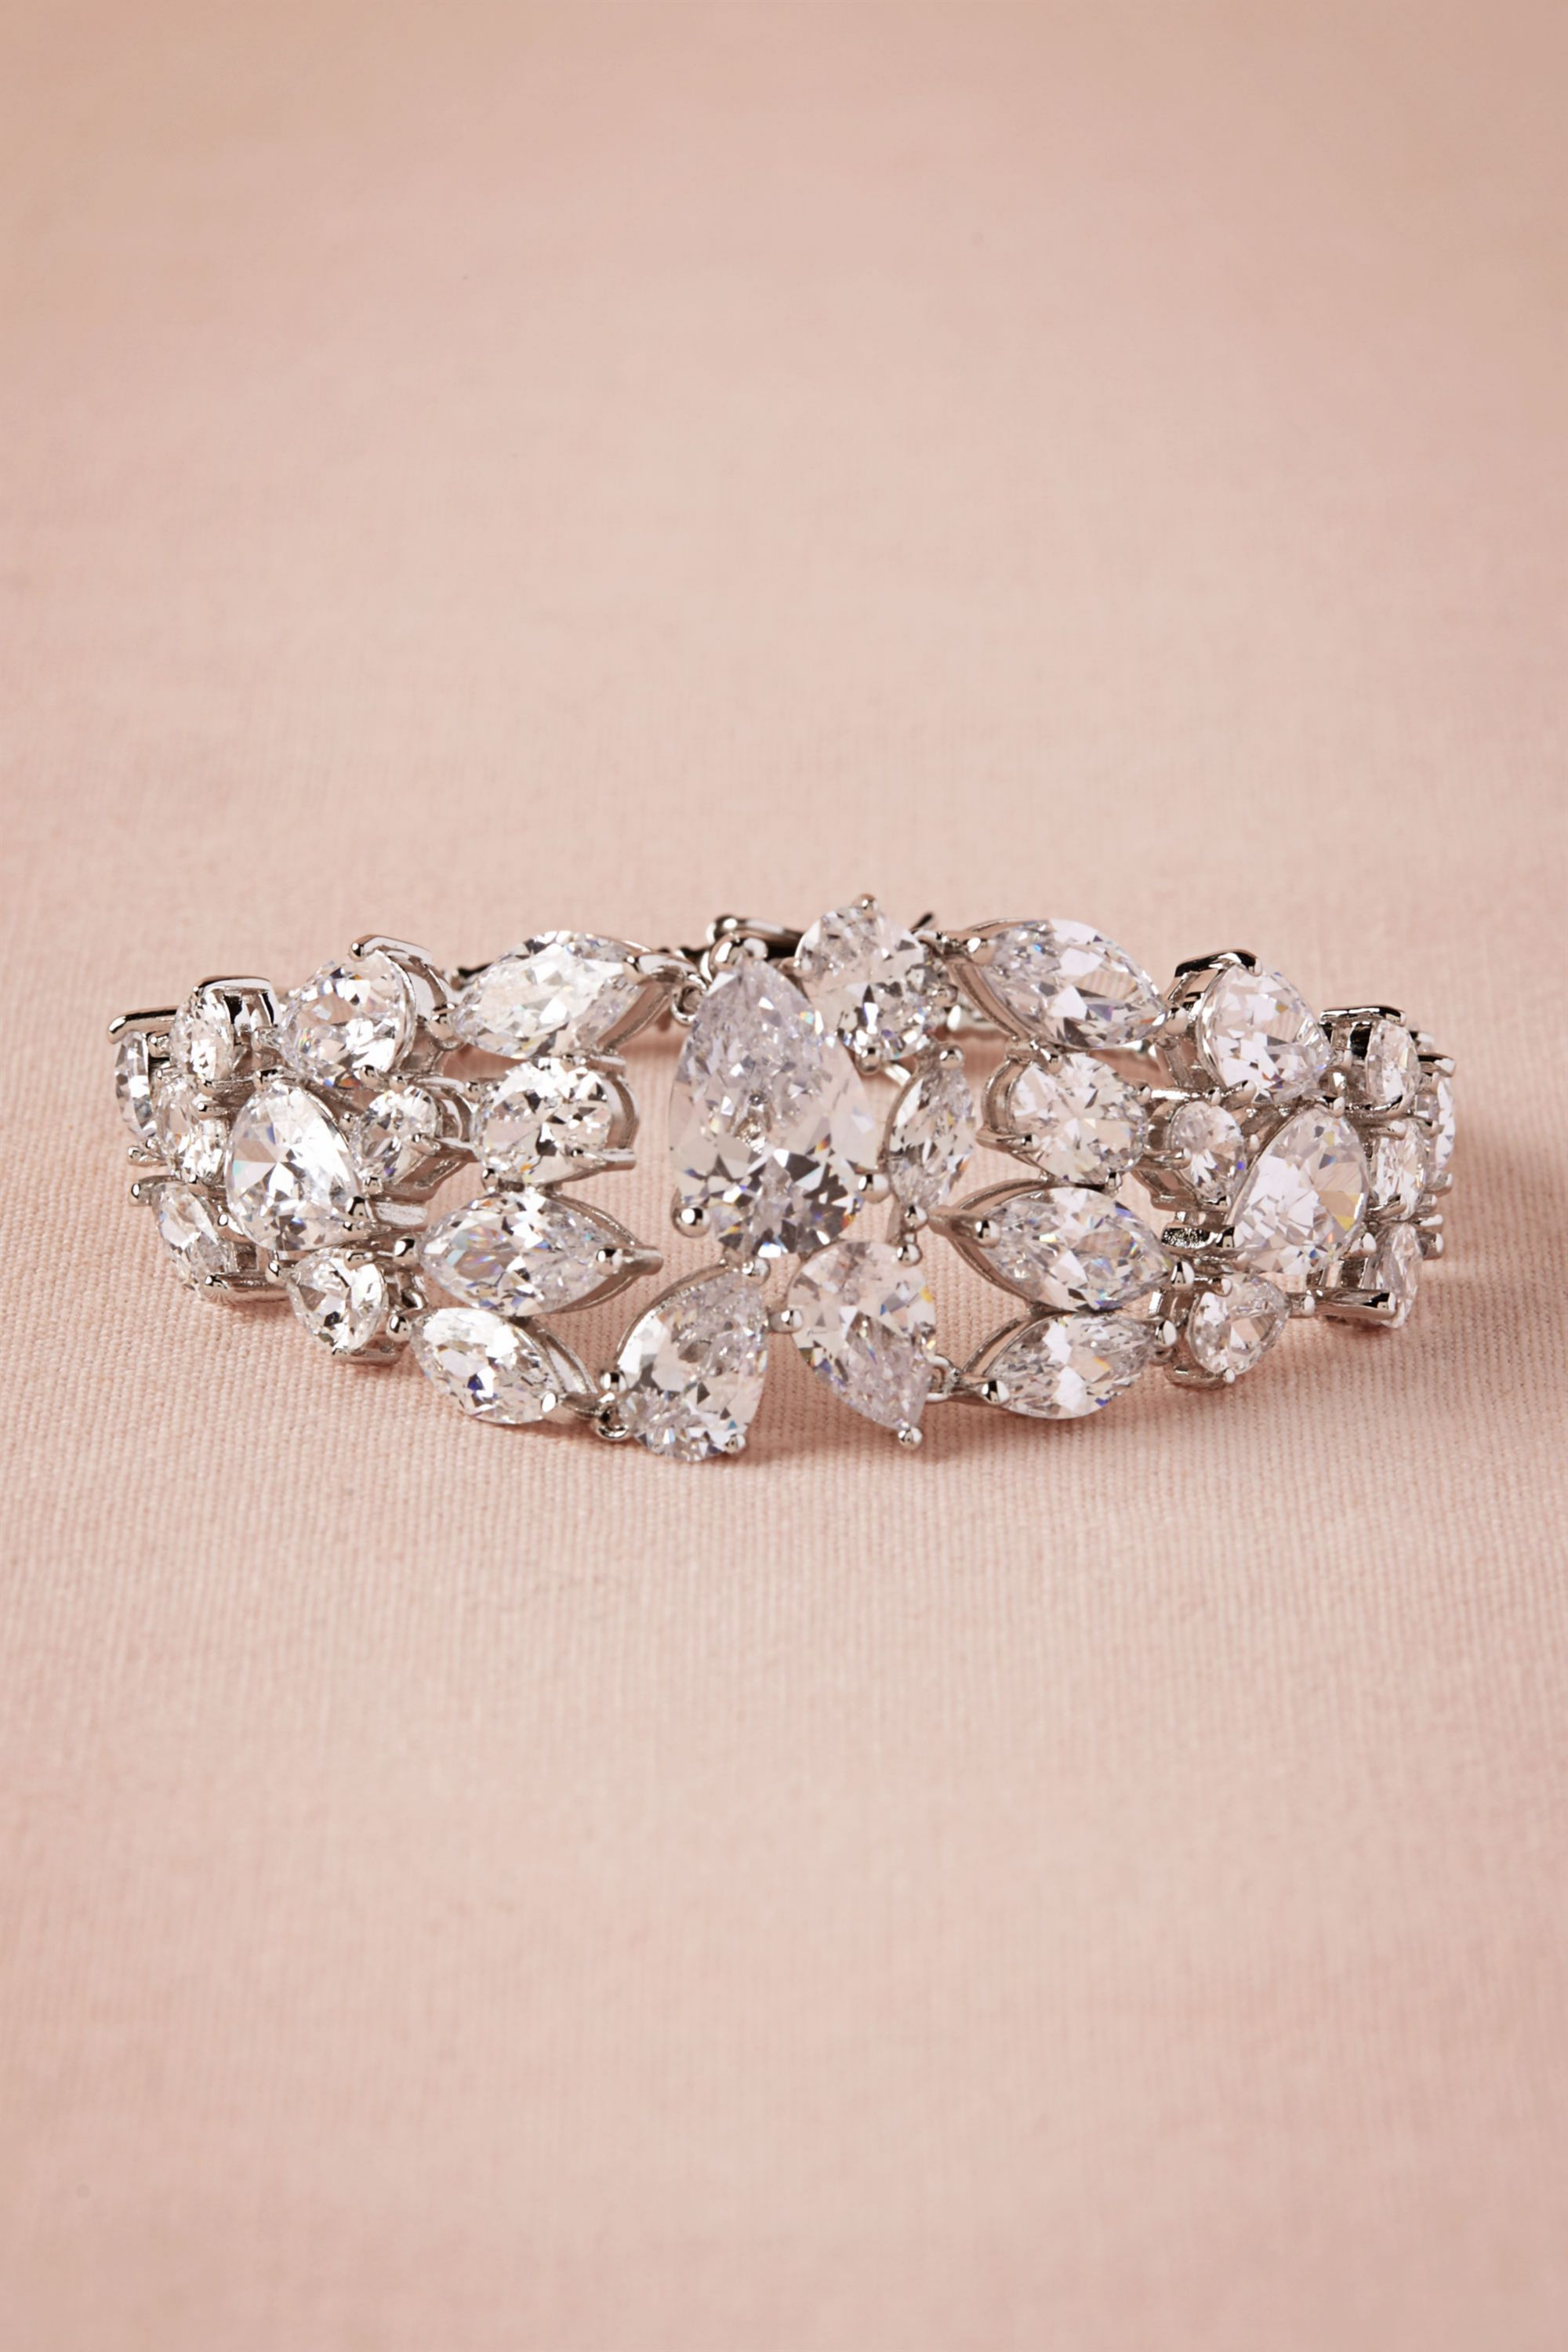 Vintage wedding jewelry for brides from BHLDN